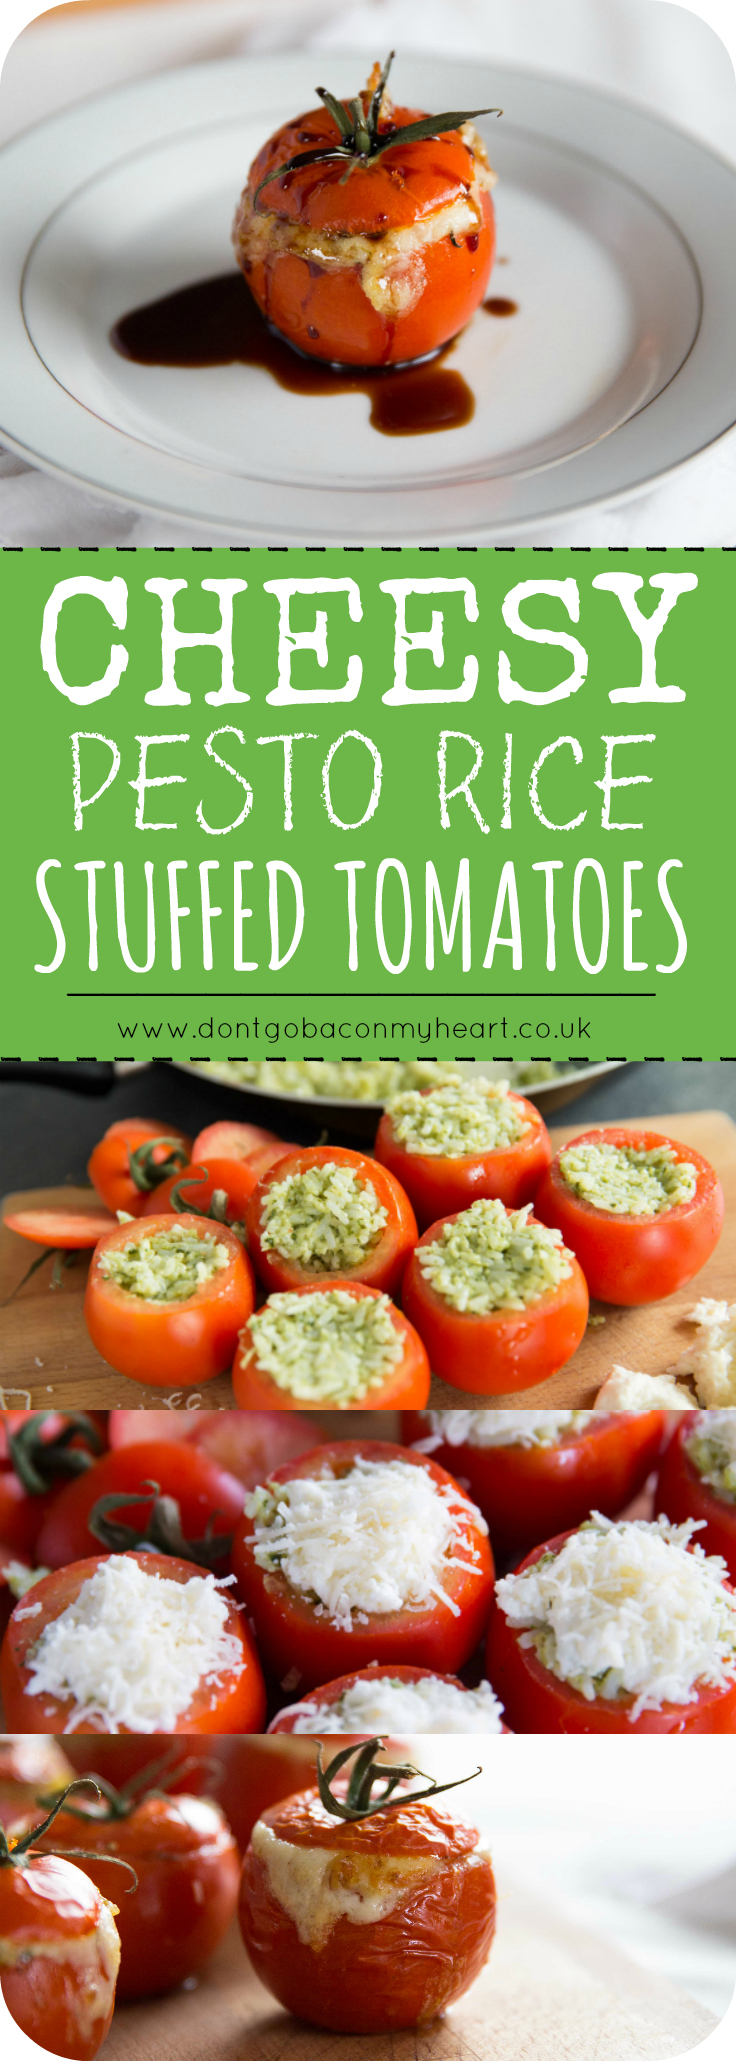 Cheesy Pesto Rice Stuffed Tomatoes are a super fun and incredibly delicious way to use up that jar of pesto you've got knocking about in the fridge. A quick 5-ingredient dinner ready and waiting! #pesto #tomato #cheese #cheesy | www.dontgobaconmyheart.co.uk